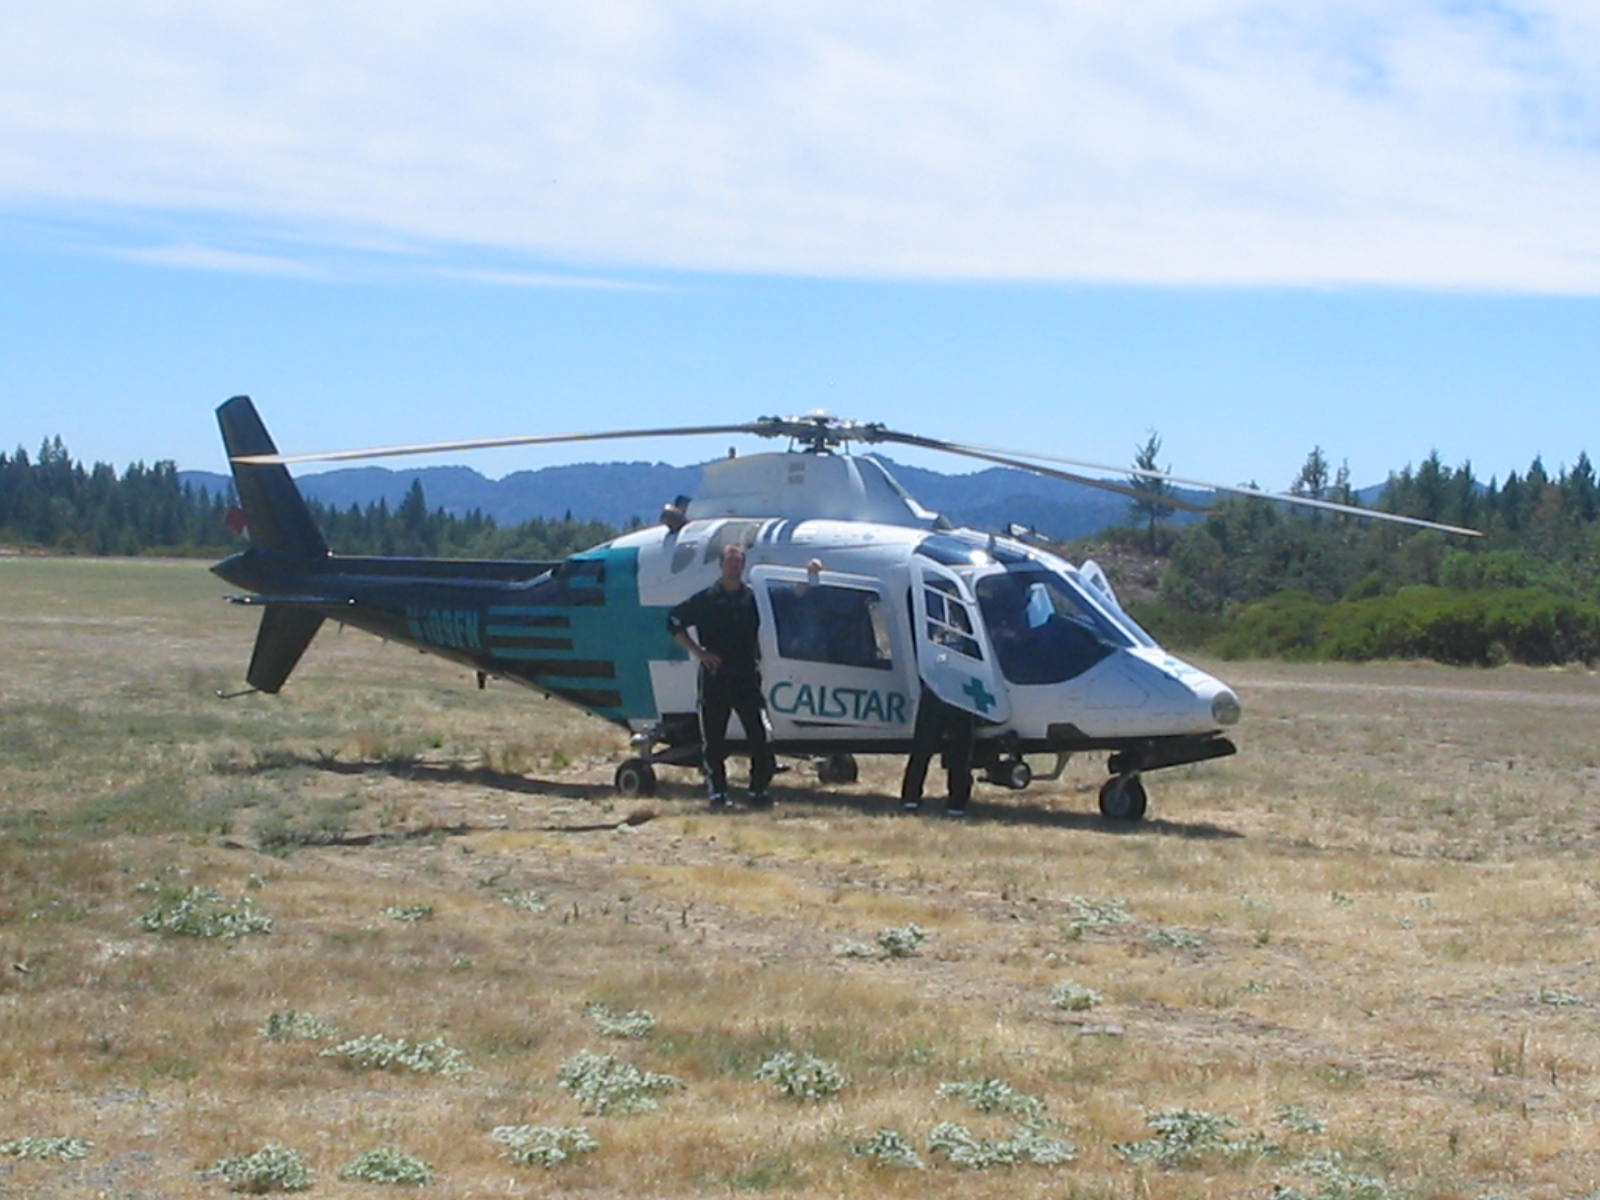 calstar helicopter with File Calstar Hirundo on Breaking News Rescue Lost Kayaker Happening Now also REACH Air Medical likewise Article e65472fd 085a 5779 8be0 9c4205d97442 as well Article d0ae859f Ef1d 5e6e 92ac E9a822afa9c4 besides Flying The Ec145.